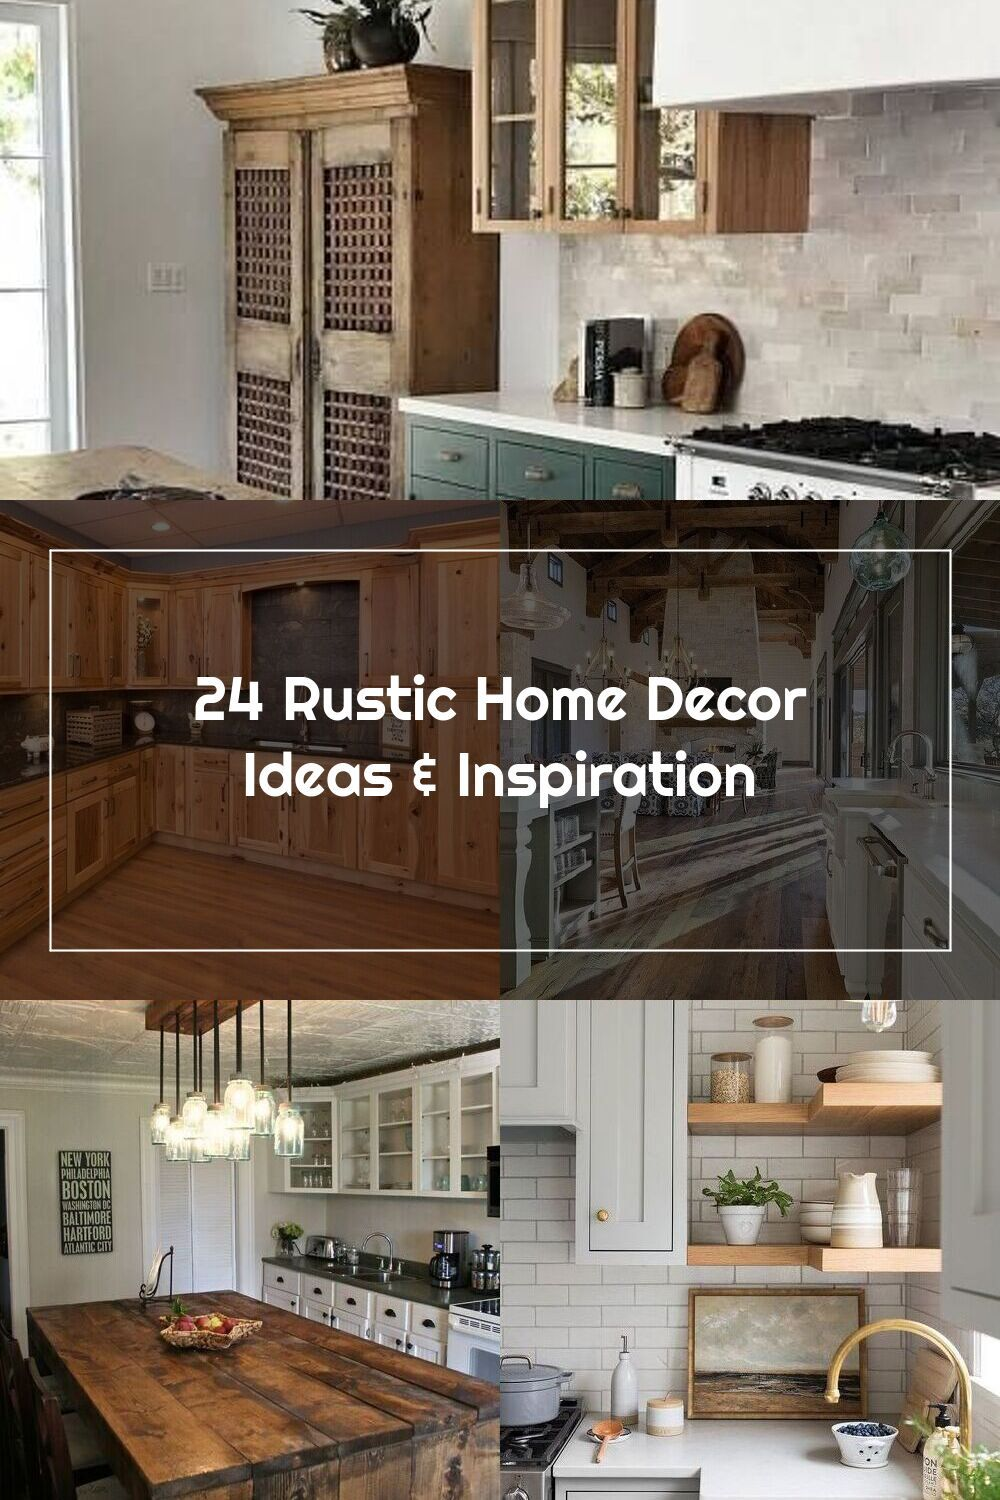 Navy Blue And White Kitchens Baltimore Homes In 2020 Top Kitchen Trends Kitchen Redo Home Kitchens